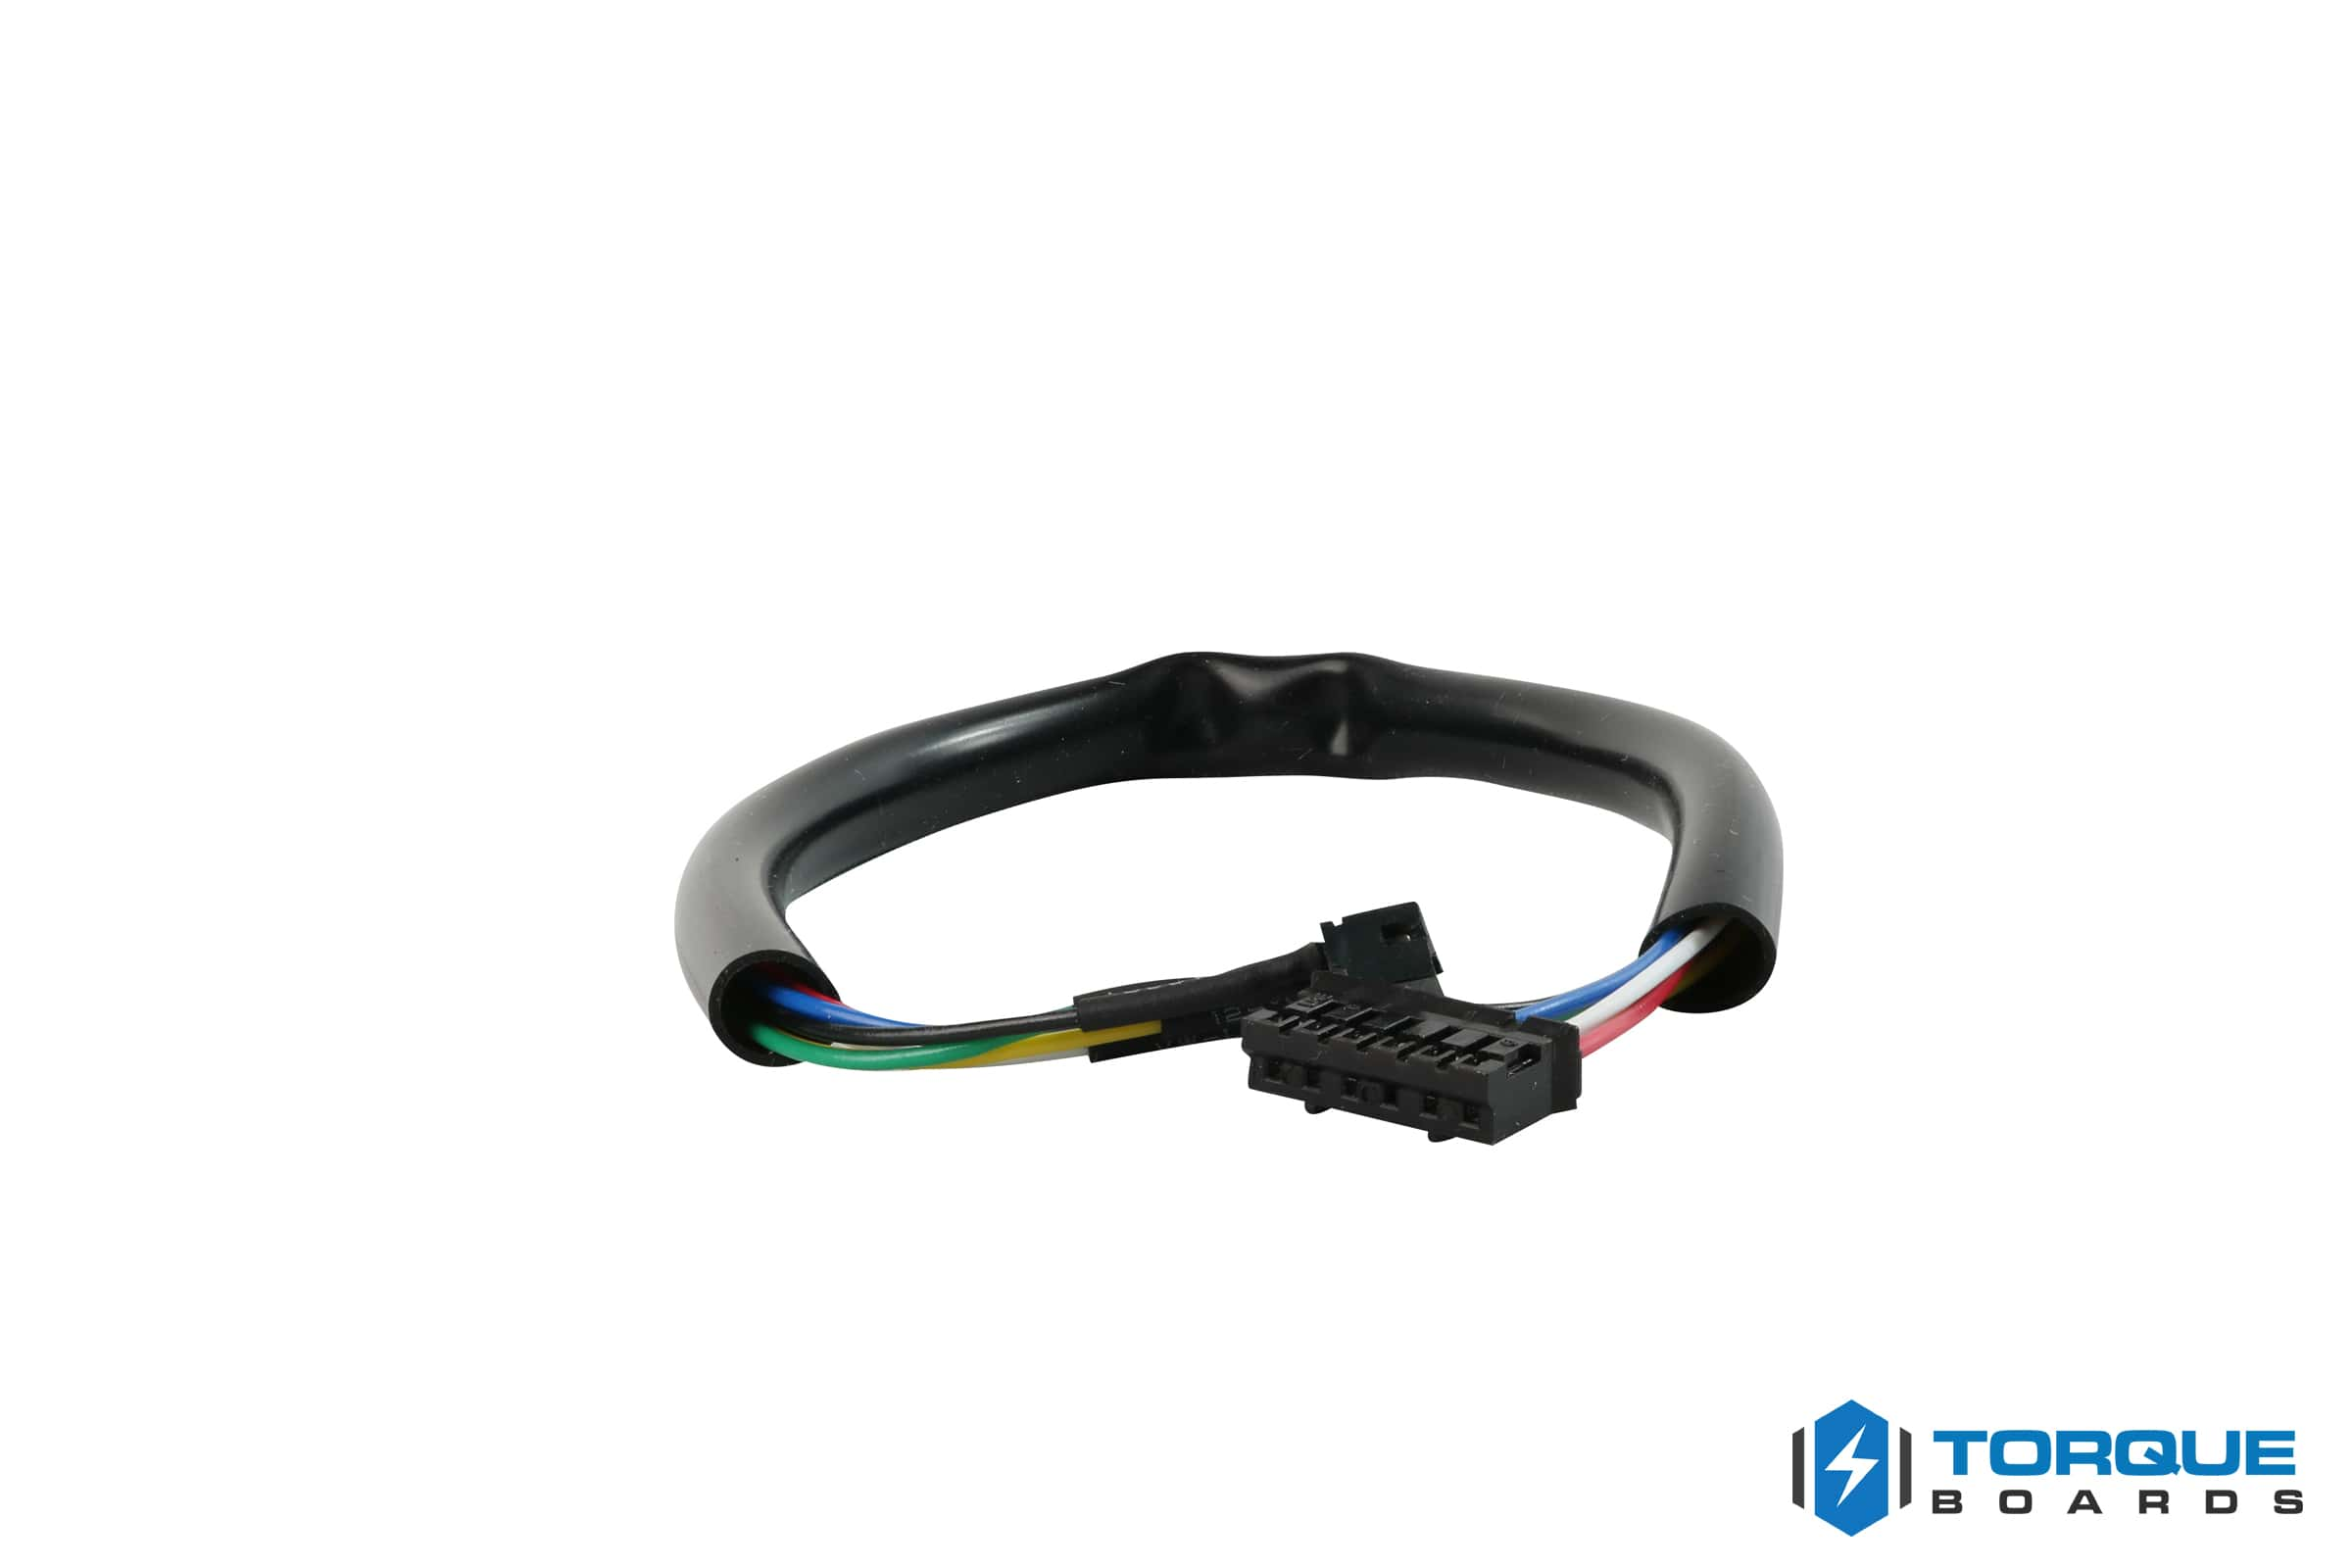 TORQUE ESC Sensor Wires – DIY Electric Skateboard on brushless drill wiring-diagram, 4s lipo wiring-diagram, mystery brushless outrunner wiring-diagram, rc heli wiring-diagram, hobbywing esc wiring-diagram,